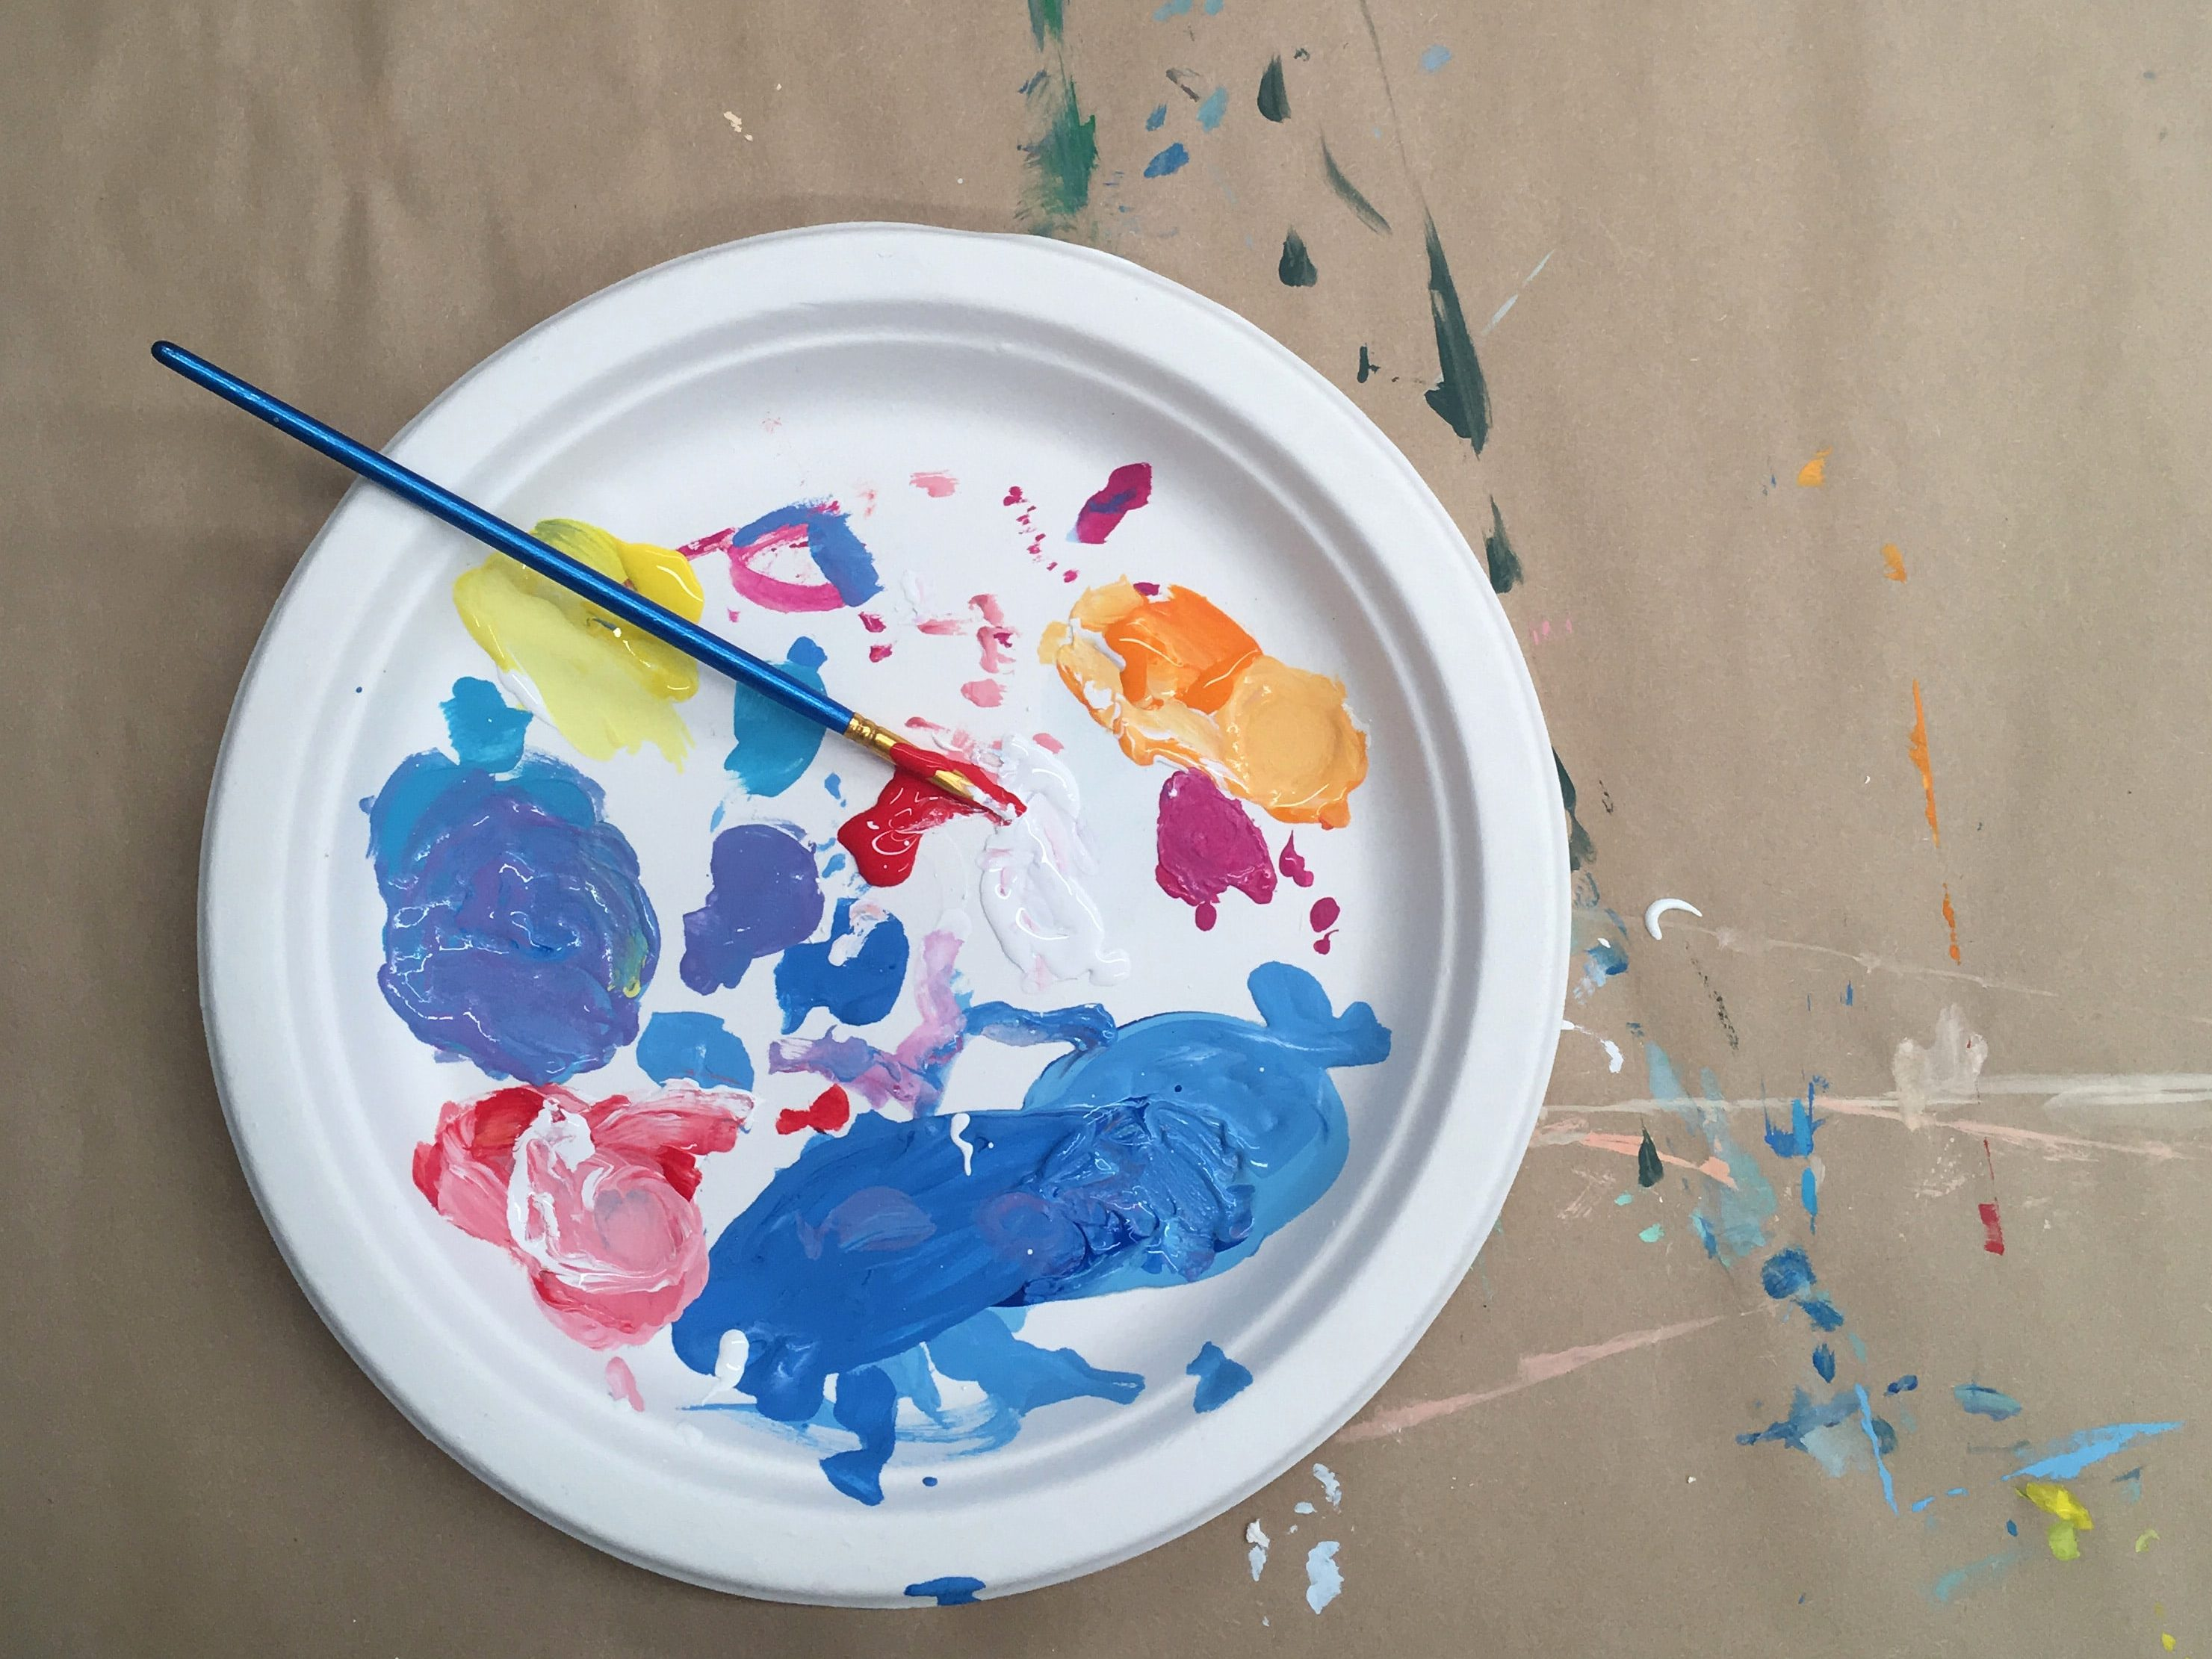 8 of the best acrylic paint brands and sets